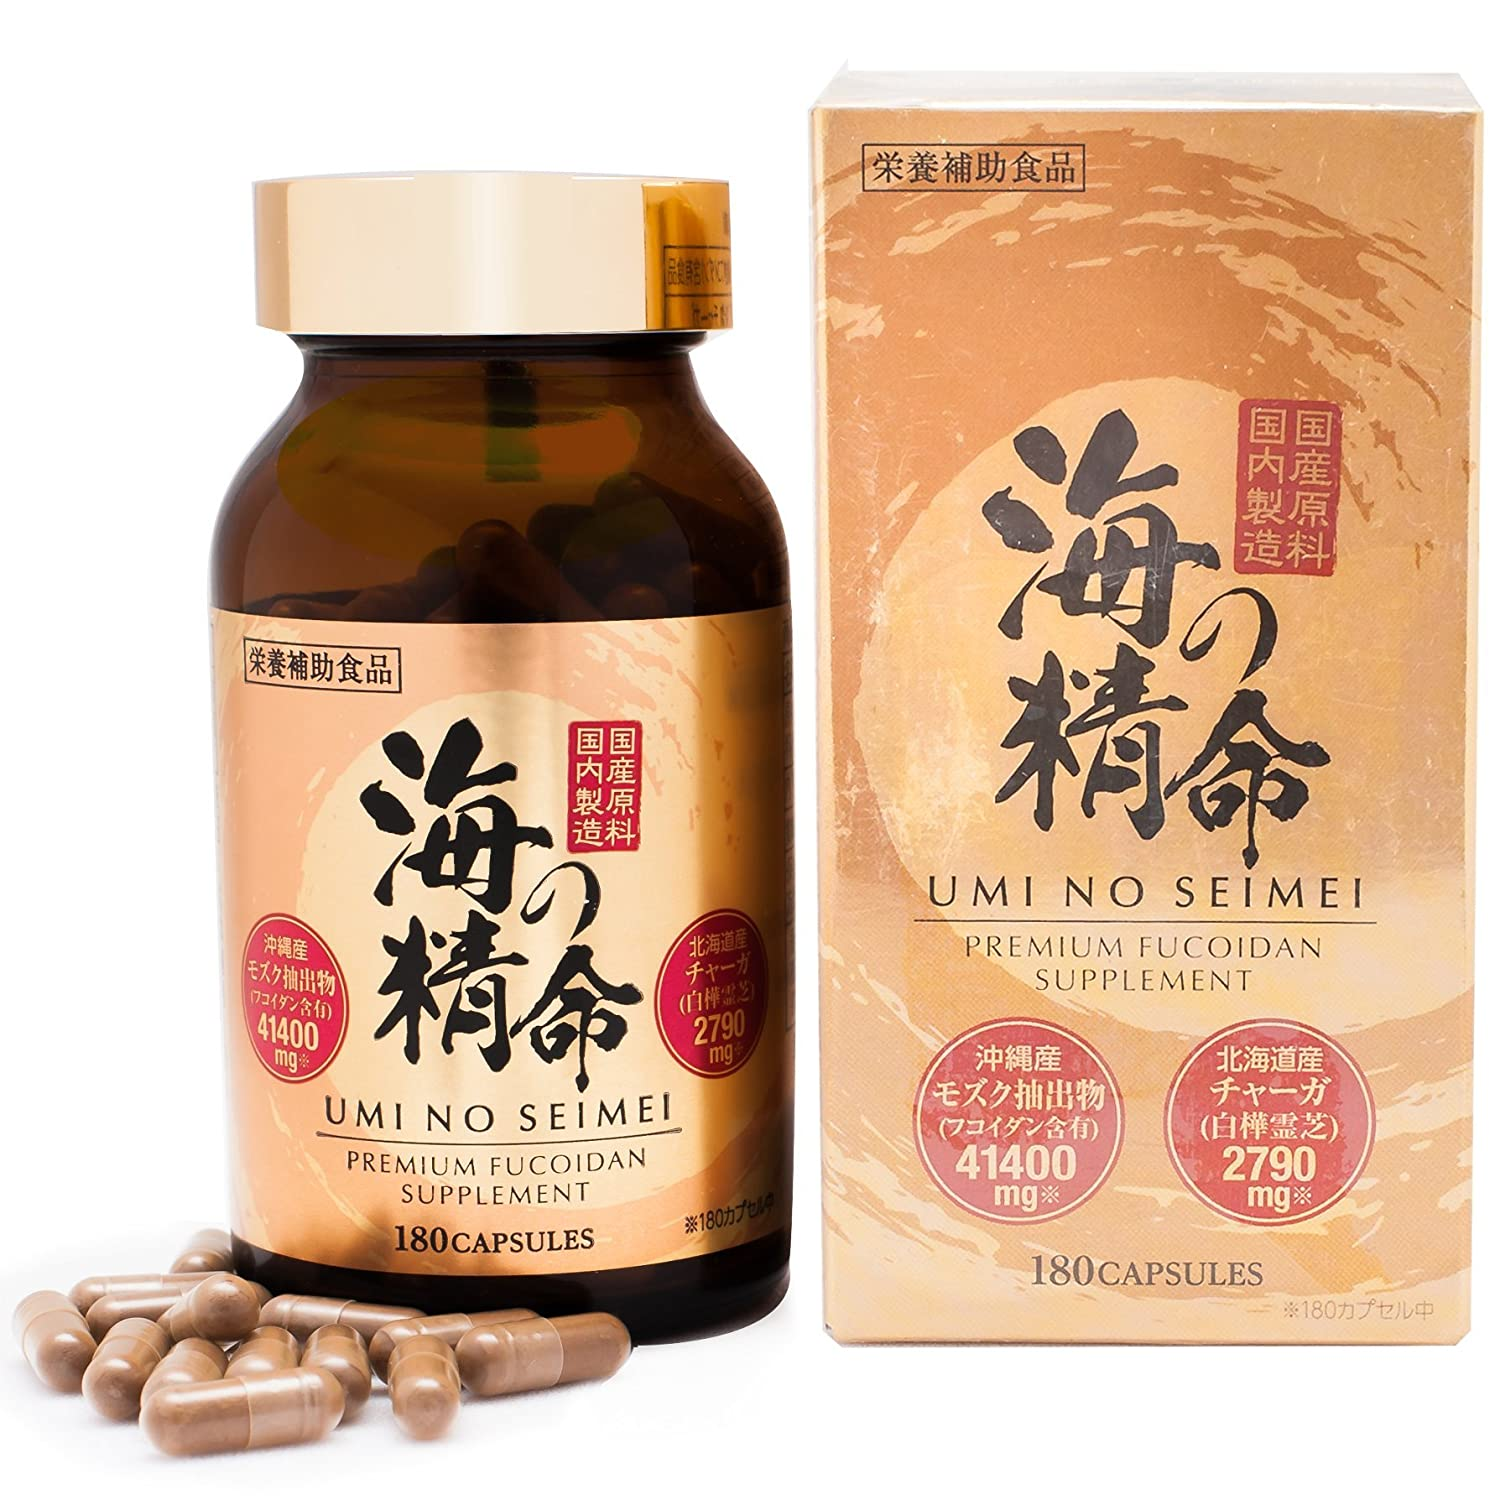 High Concentration Fucoidan Supplement UMI NO SEIMEI 180 capsules Fucoidan Extract Capsules 41400mg Chaga Mushroom Extract Capsules 2790mg Perfect Boosting Your Immune System Made In Japan